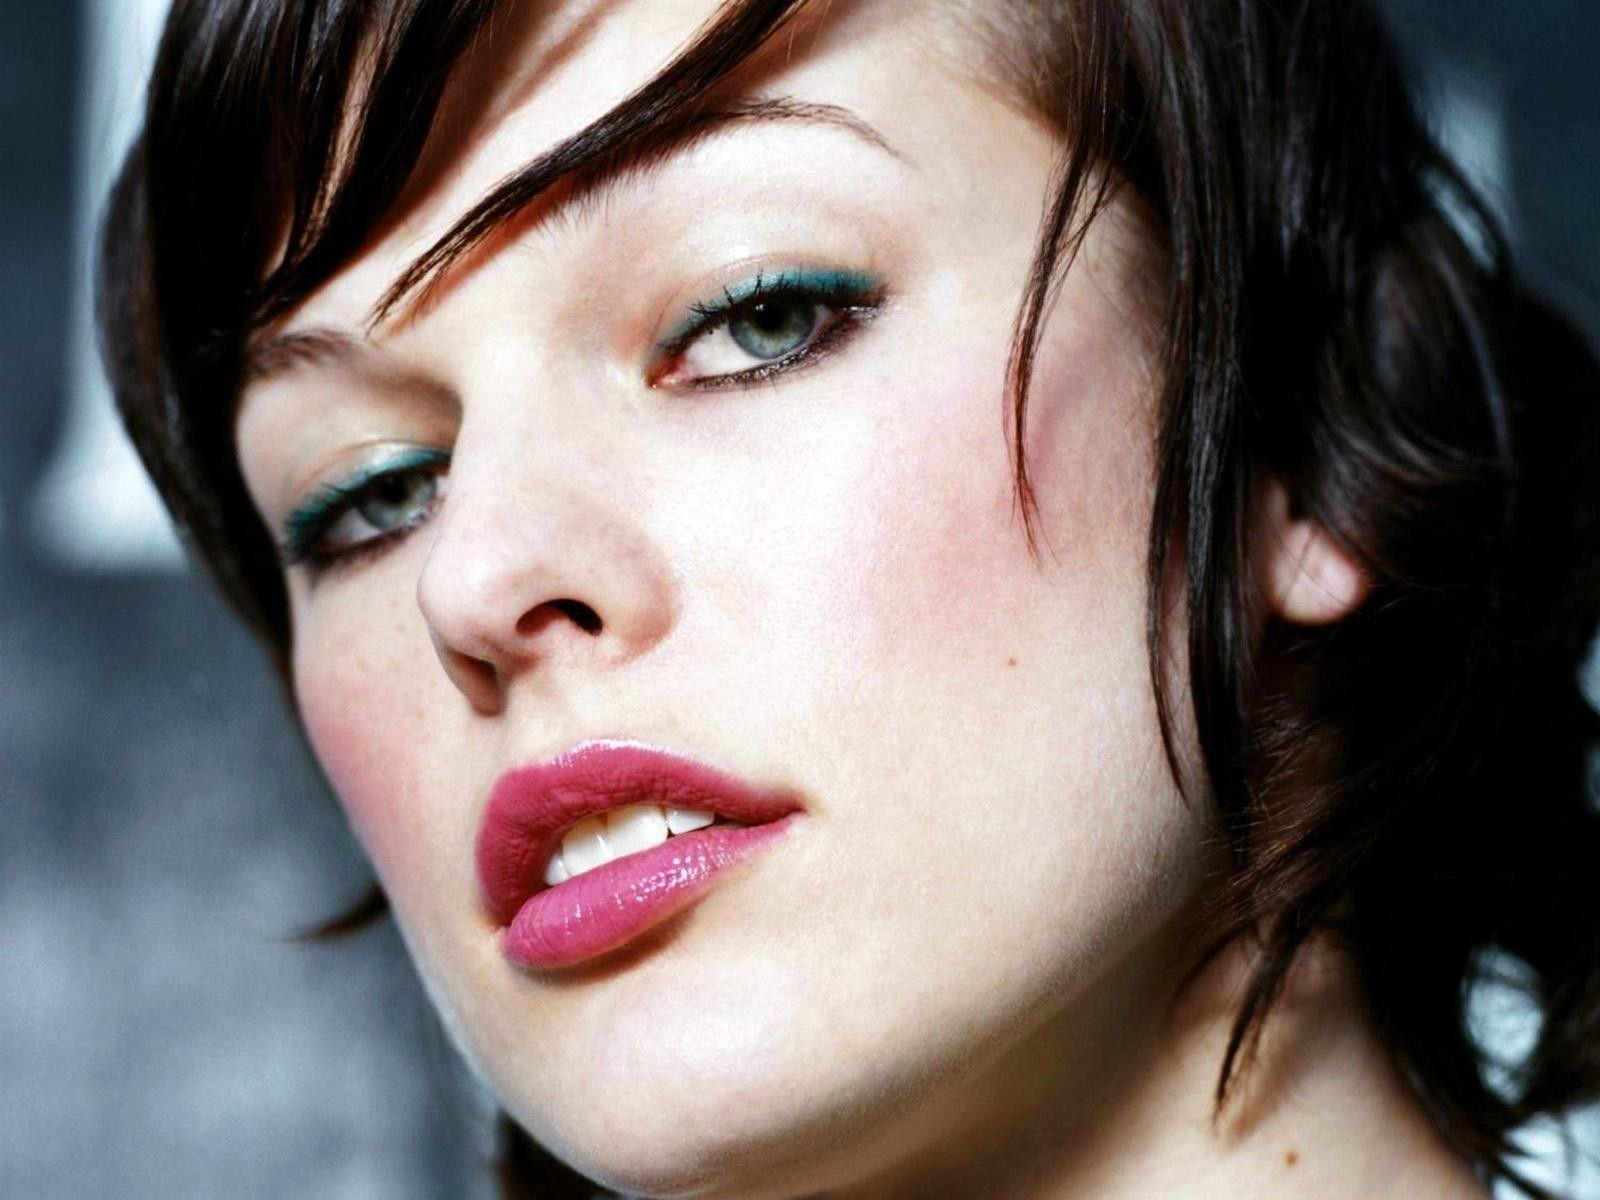 The Image of Actress Milla Jovovich 1600x1200 HD Wallpapers